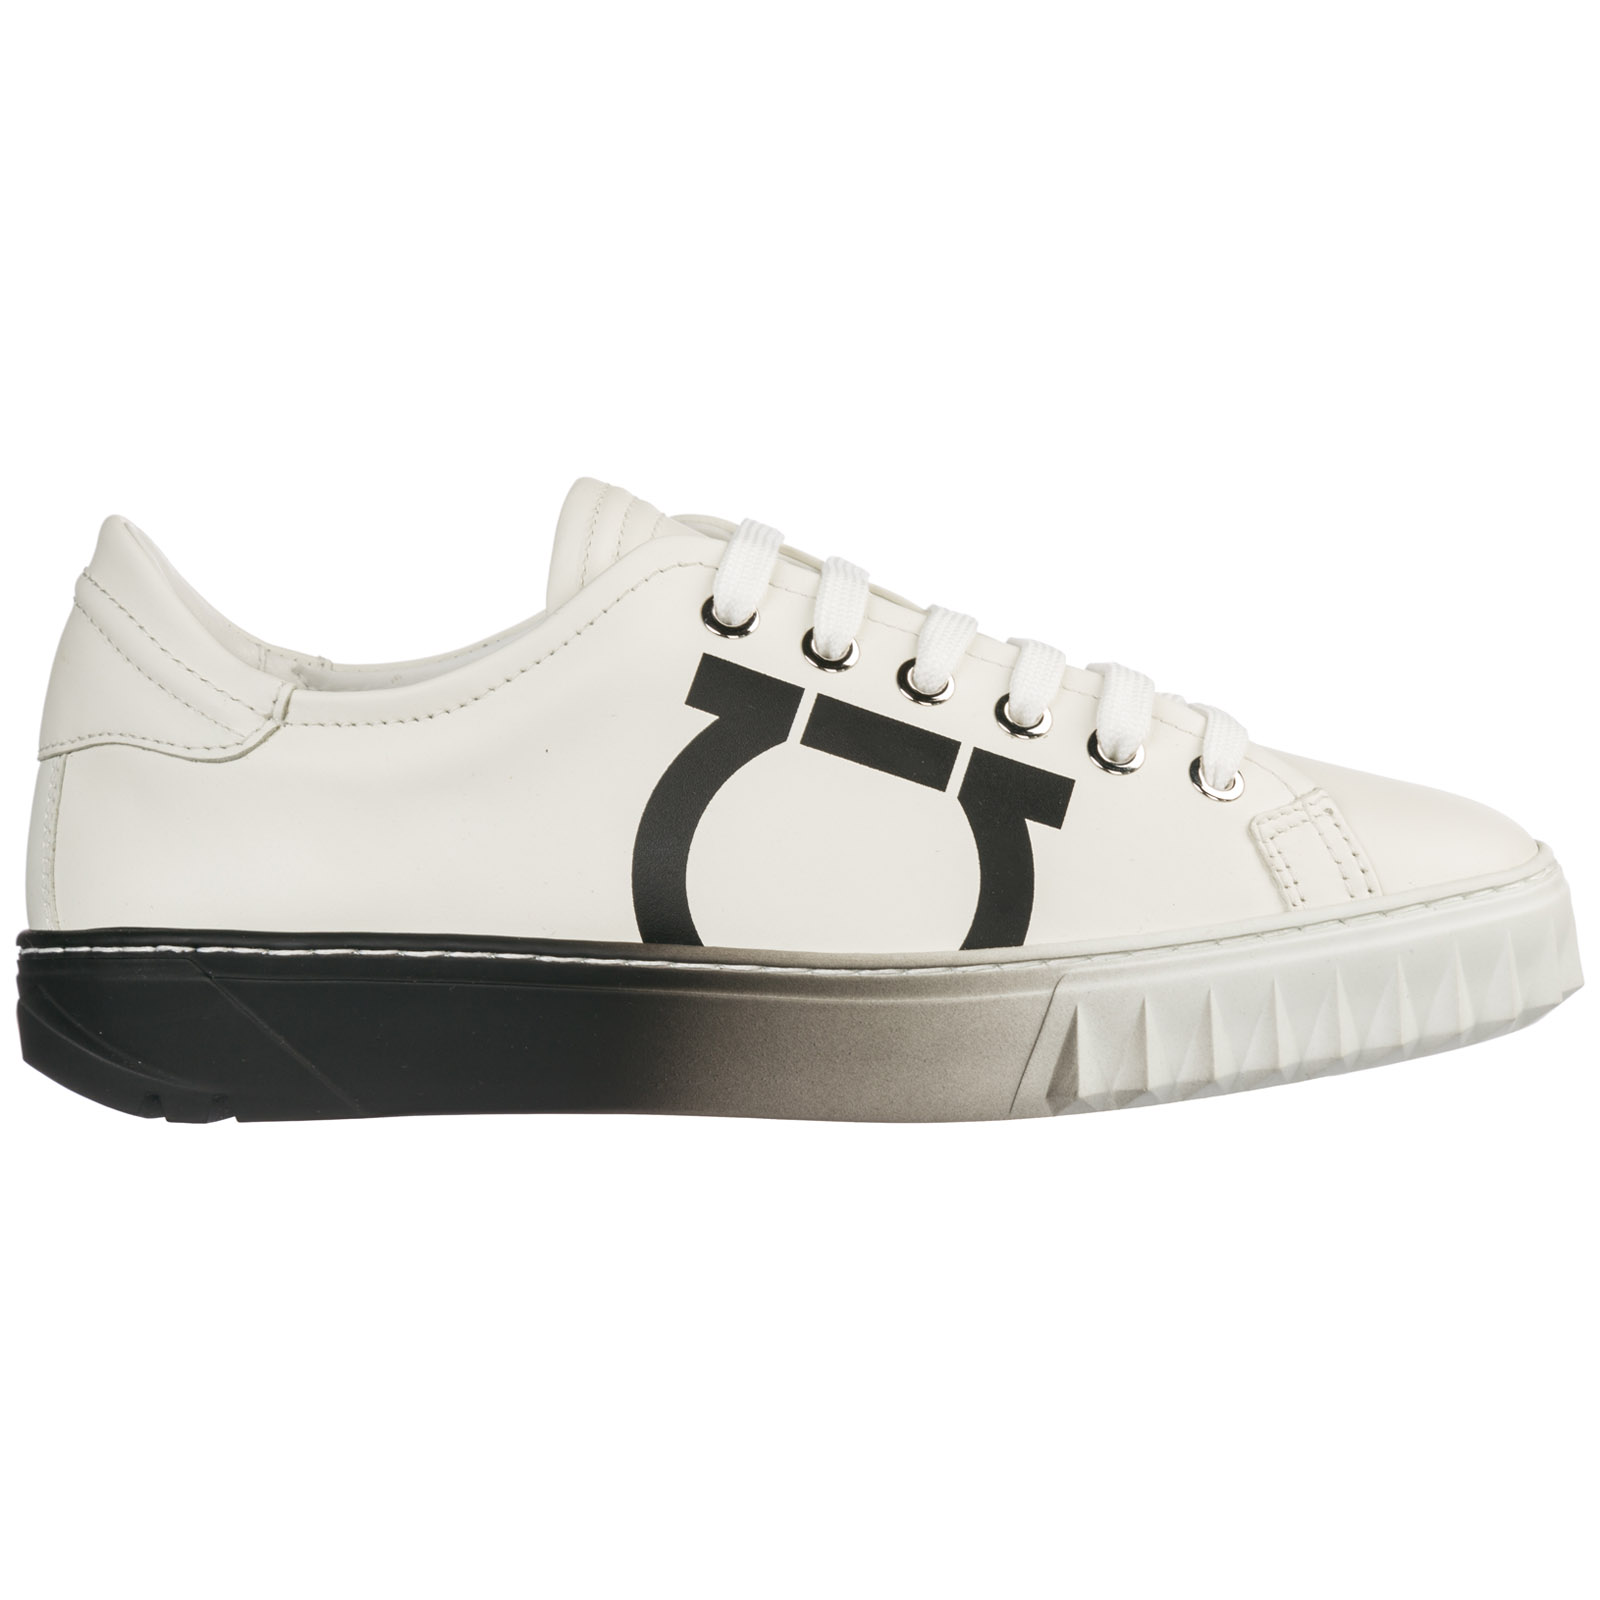 1dfff7bb002c Salvatore Ferragamo Women s Shoes Leather Trainers Sneakers Gancini In White